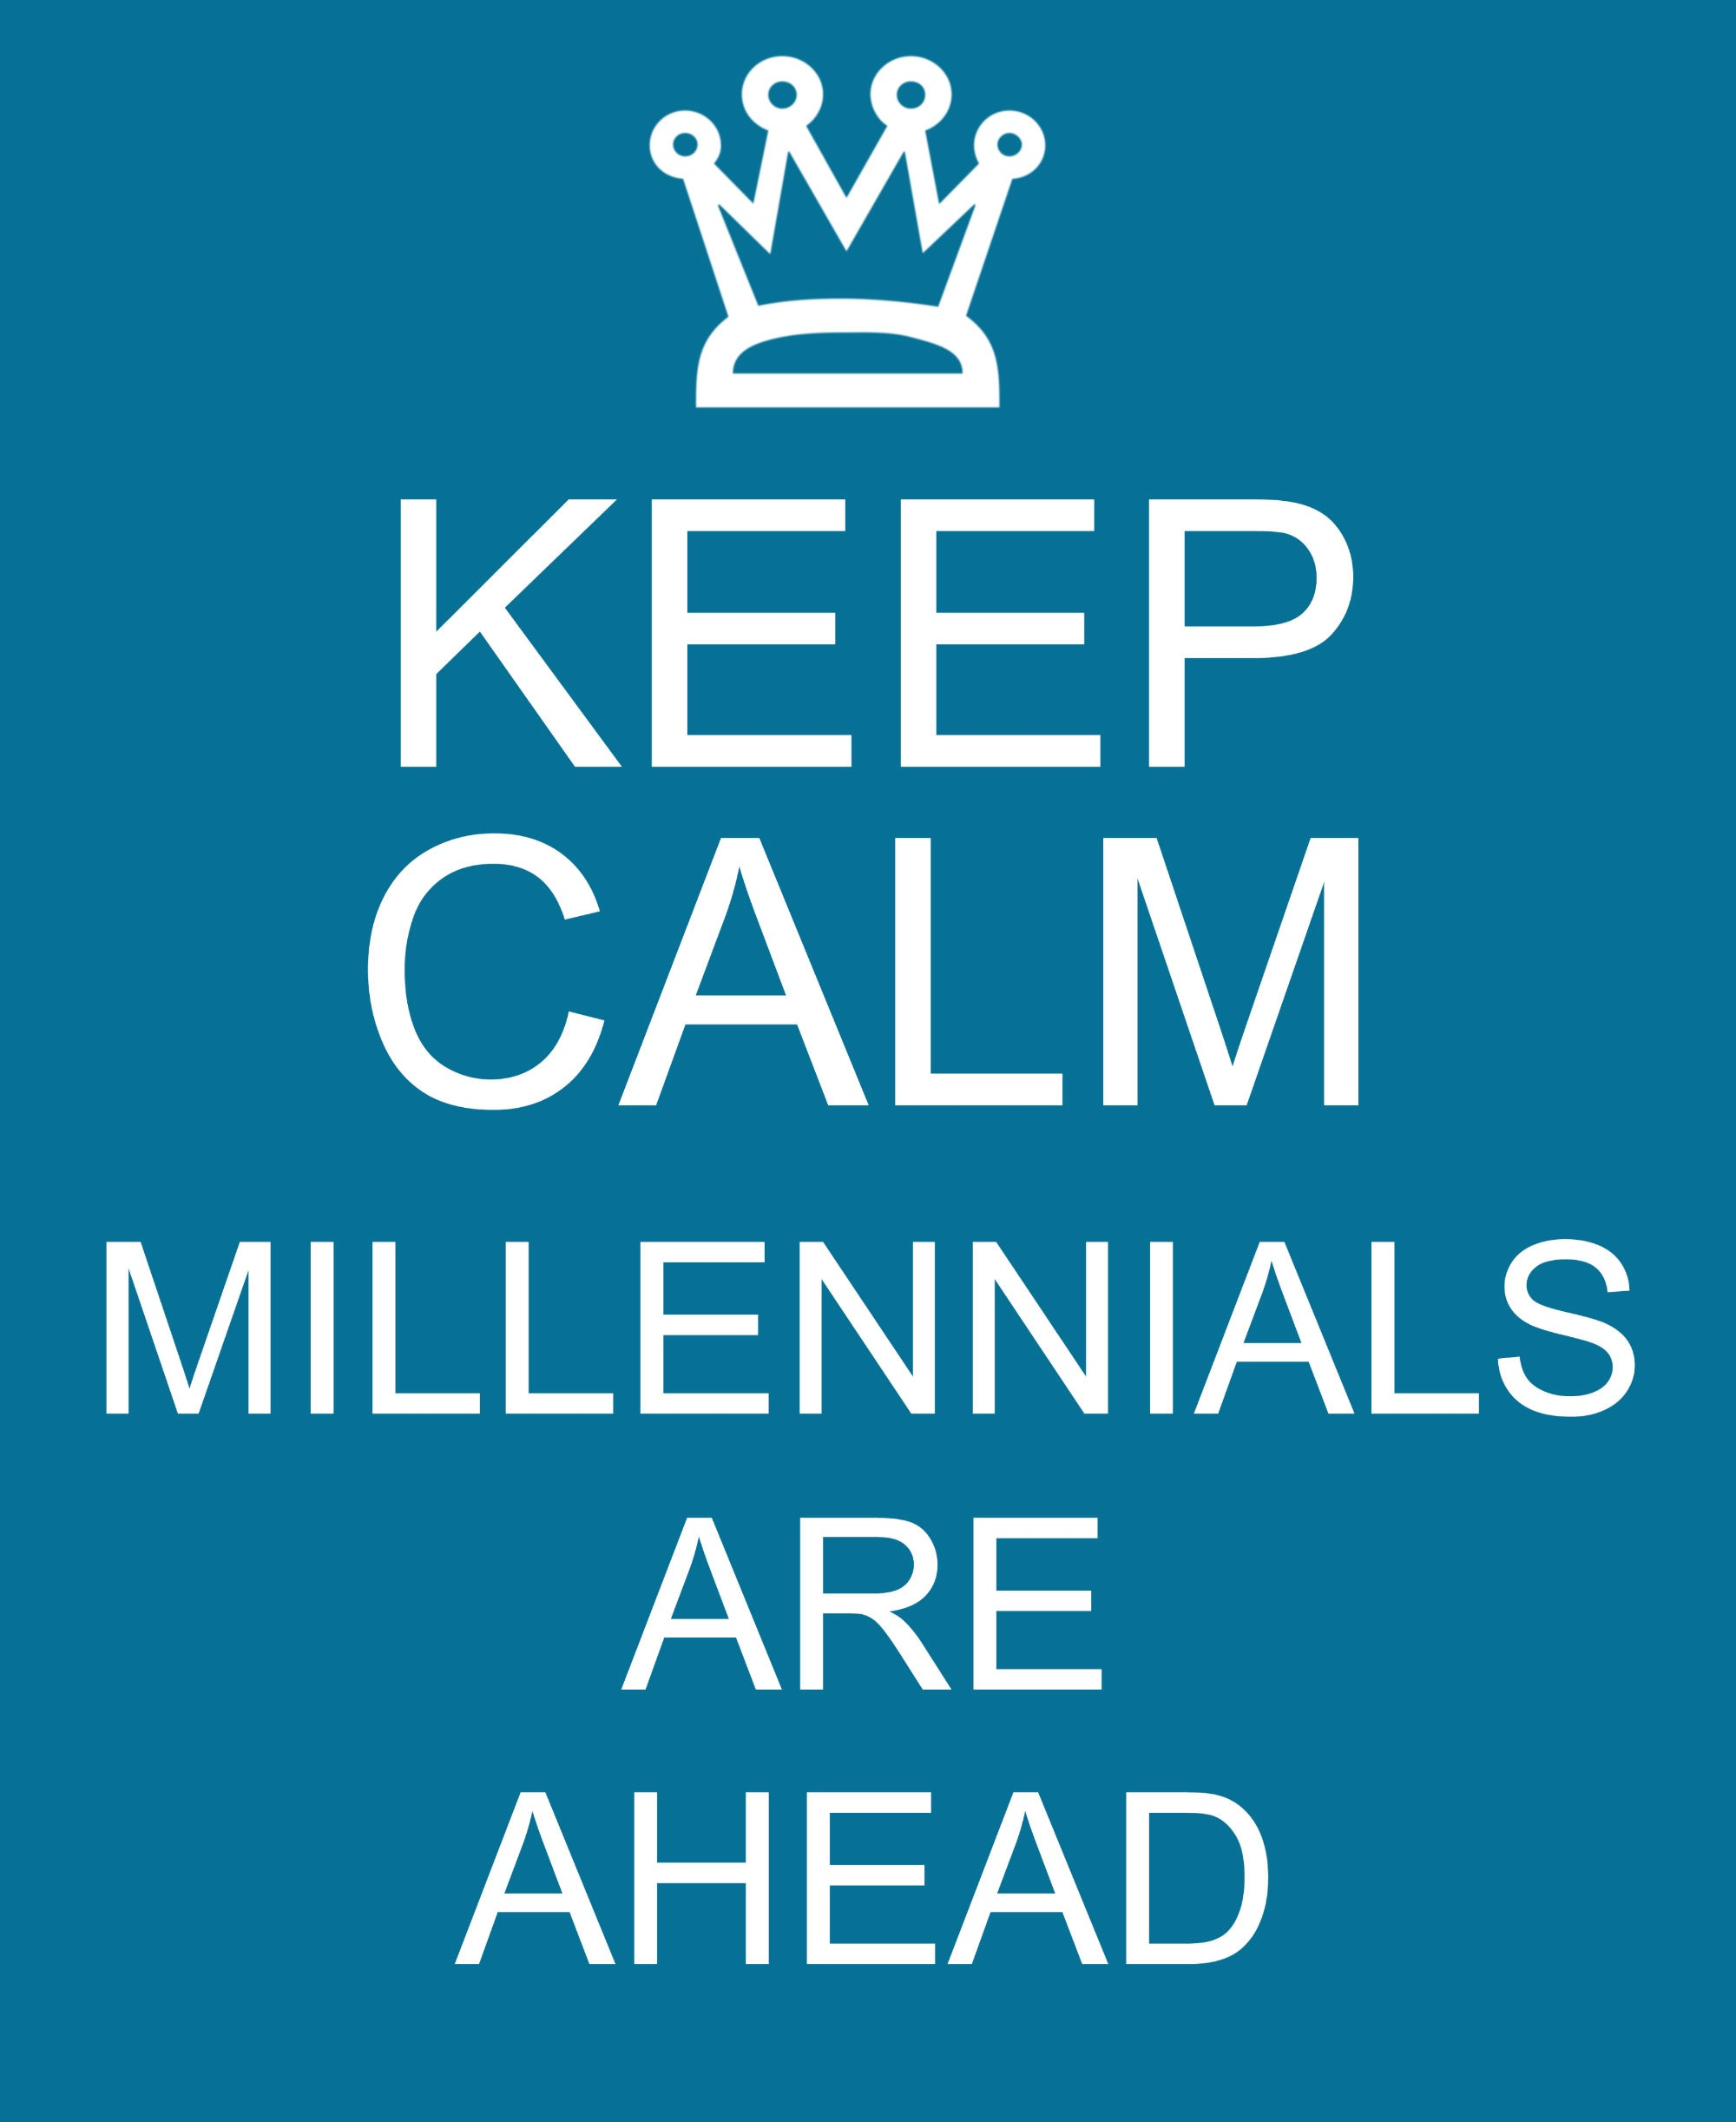 keep calm, millennials are ahead.jpg